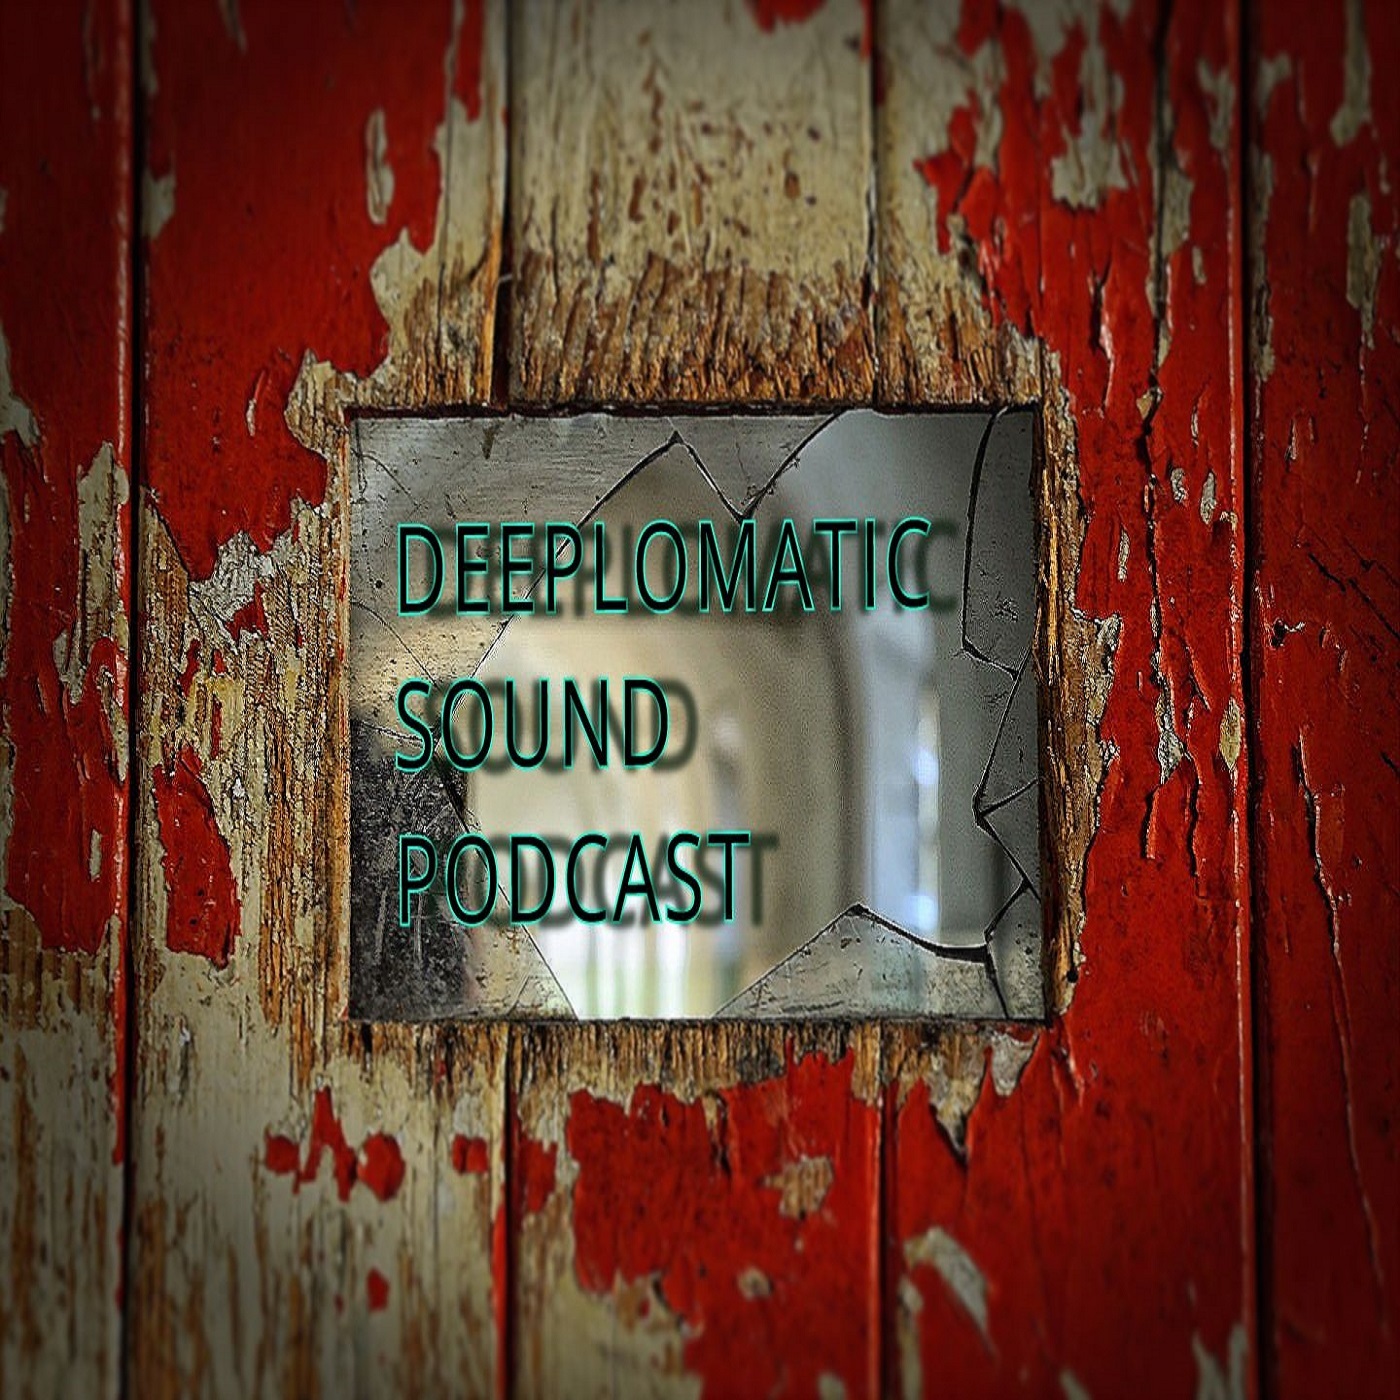 DEEPLOMATIC SOUND PODCAST